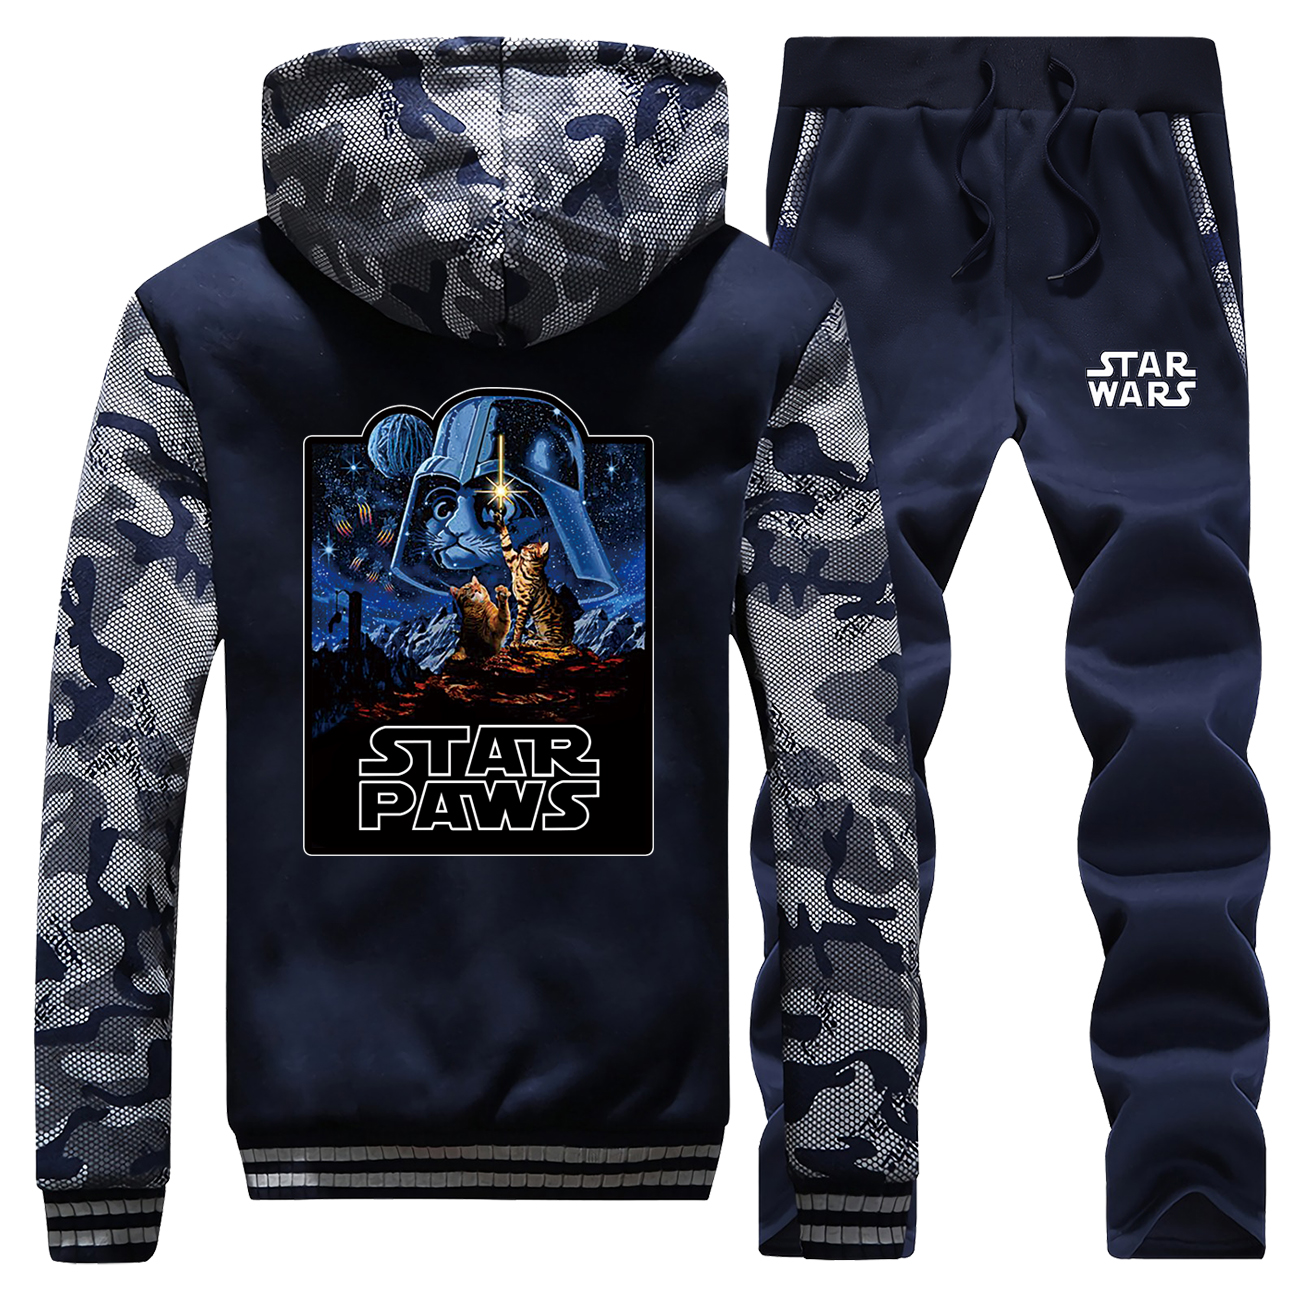 Star Wars Darth Vader Tracksuits Jacket Pant Set Men Sportsuits Sweatshirts Hoodies Sweatpant Suit 2 PCS Camo Coat Sportswear